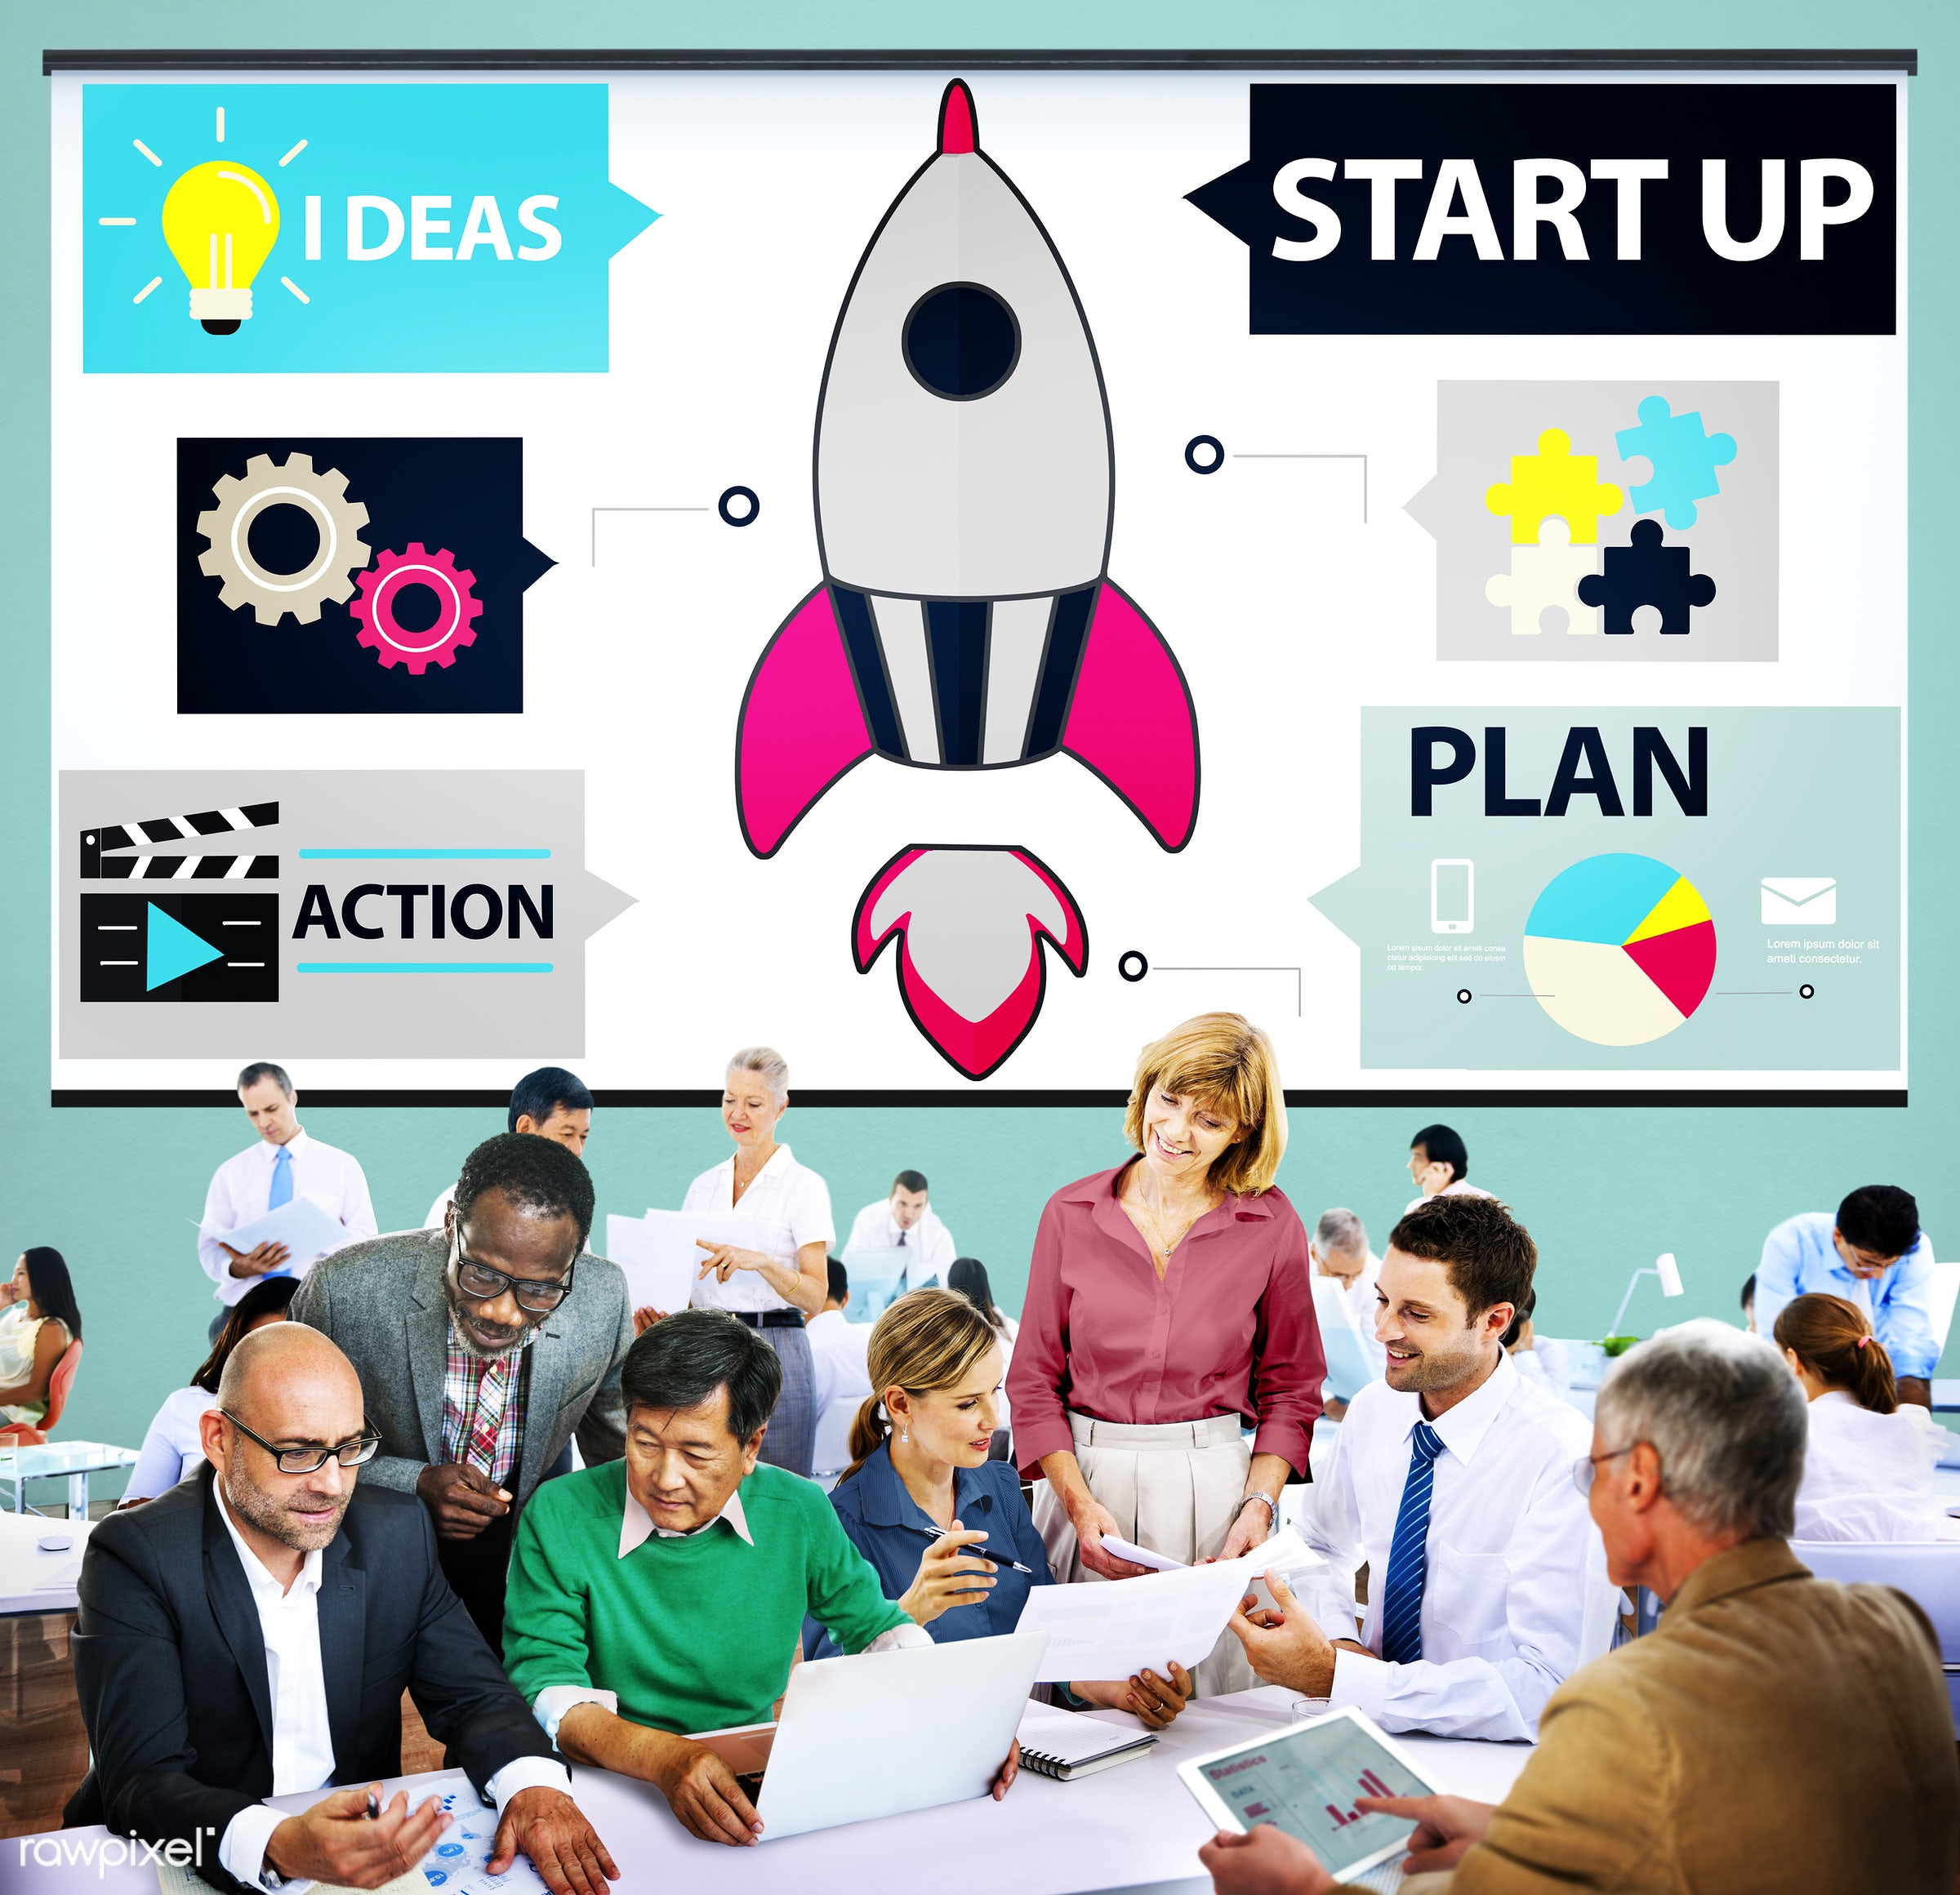 action, analysis, business, business people, businessmen, businesswomen, busy, communication, conversation, corporate,...